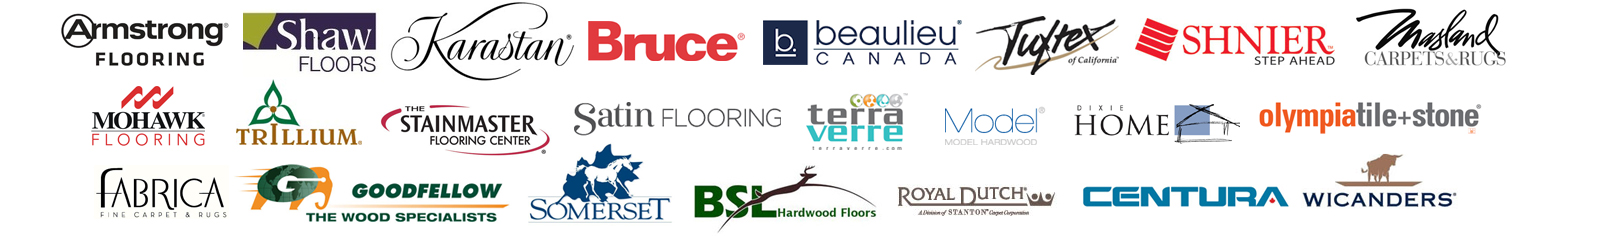 Brampton Cheap Hardwood Flooring Store